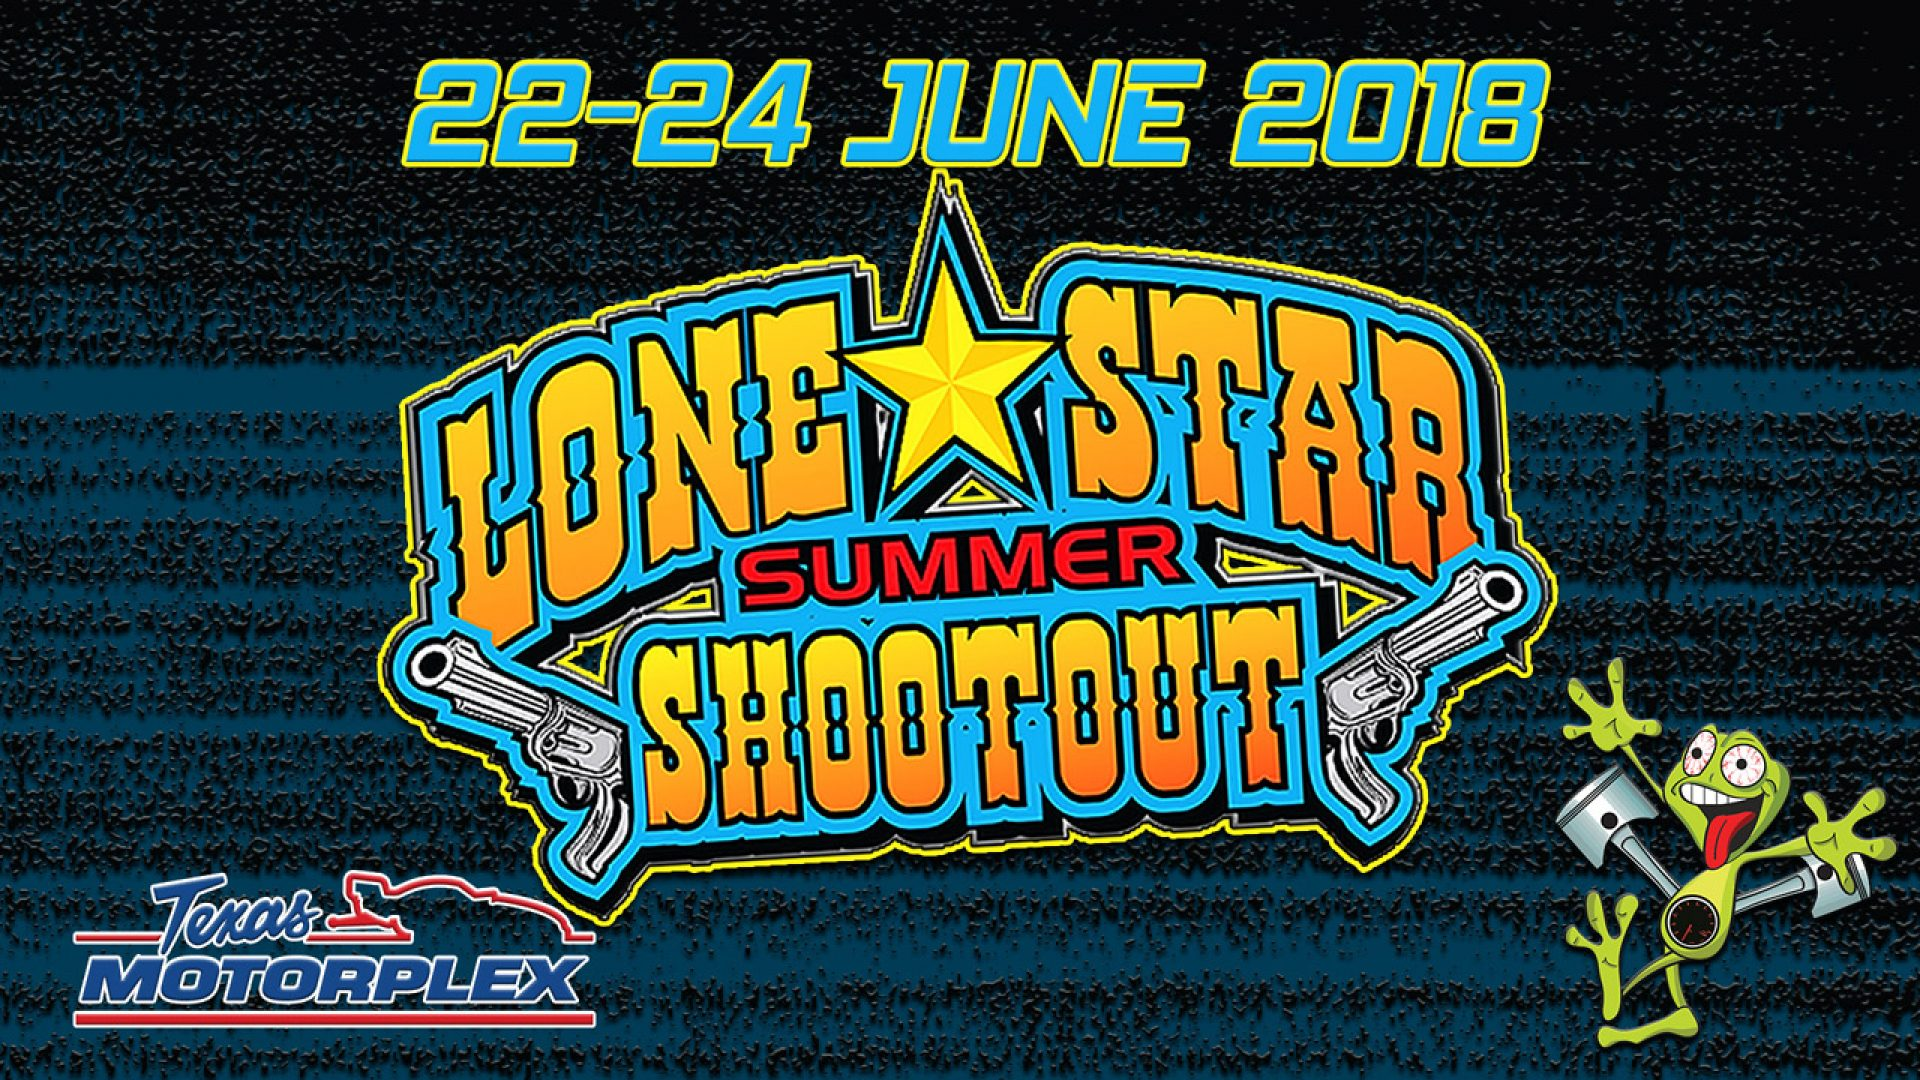 June22-24_LSshootout2018_Wps3sm